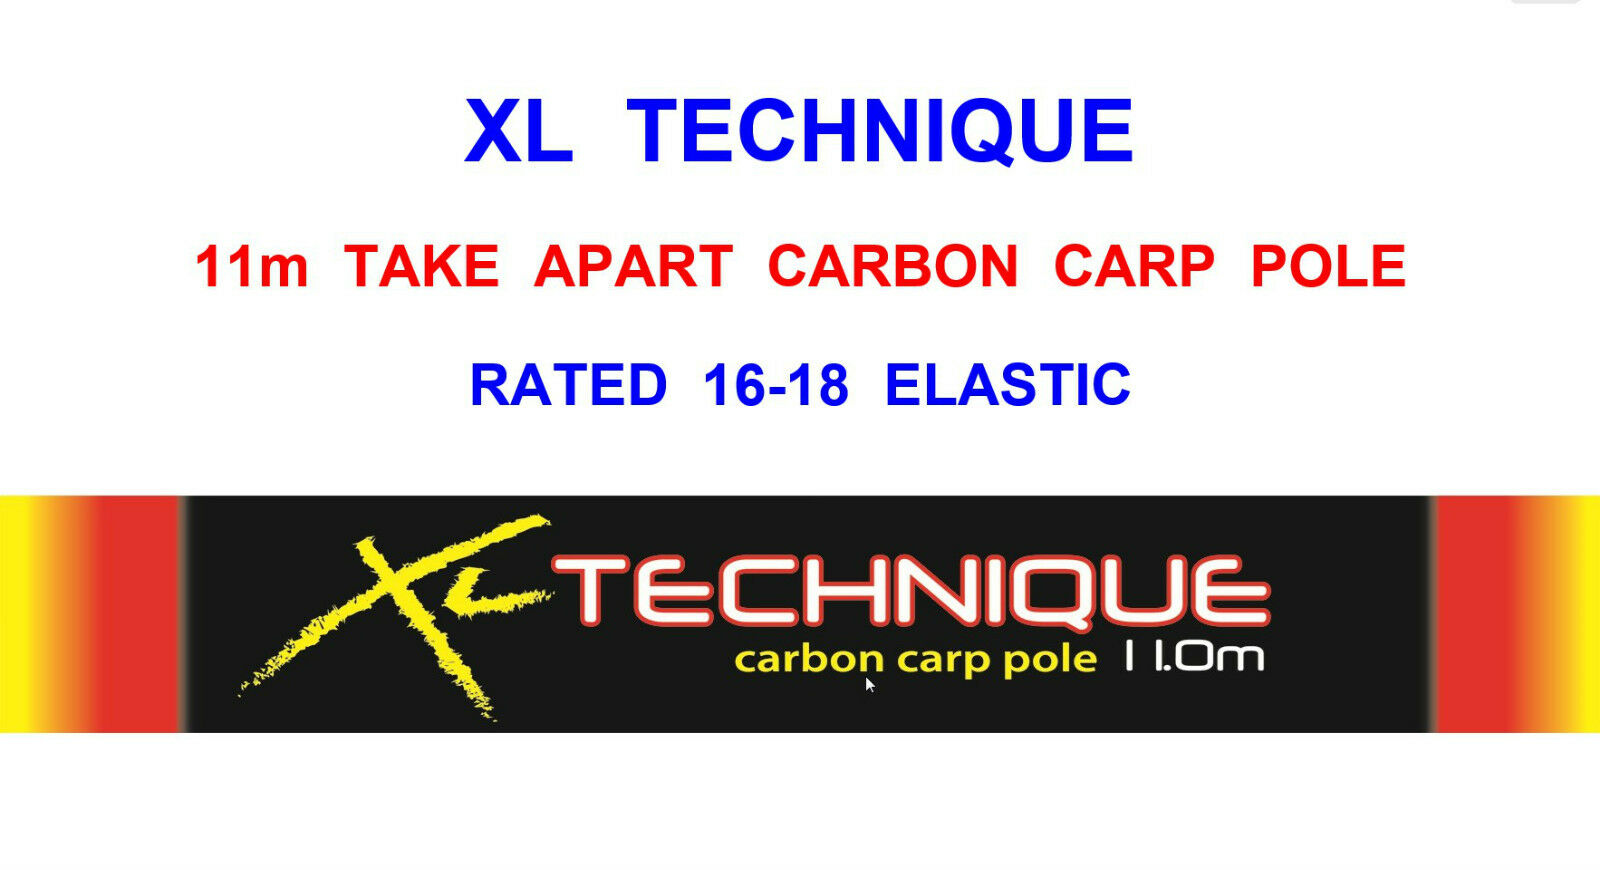 XL TECHNIQUE TAKE APART 11m CARBON CARP POLE COARSE FISHING RATED 16-18 ELASTIC